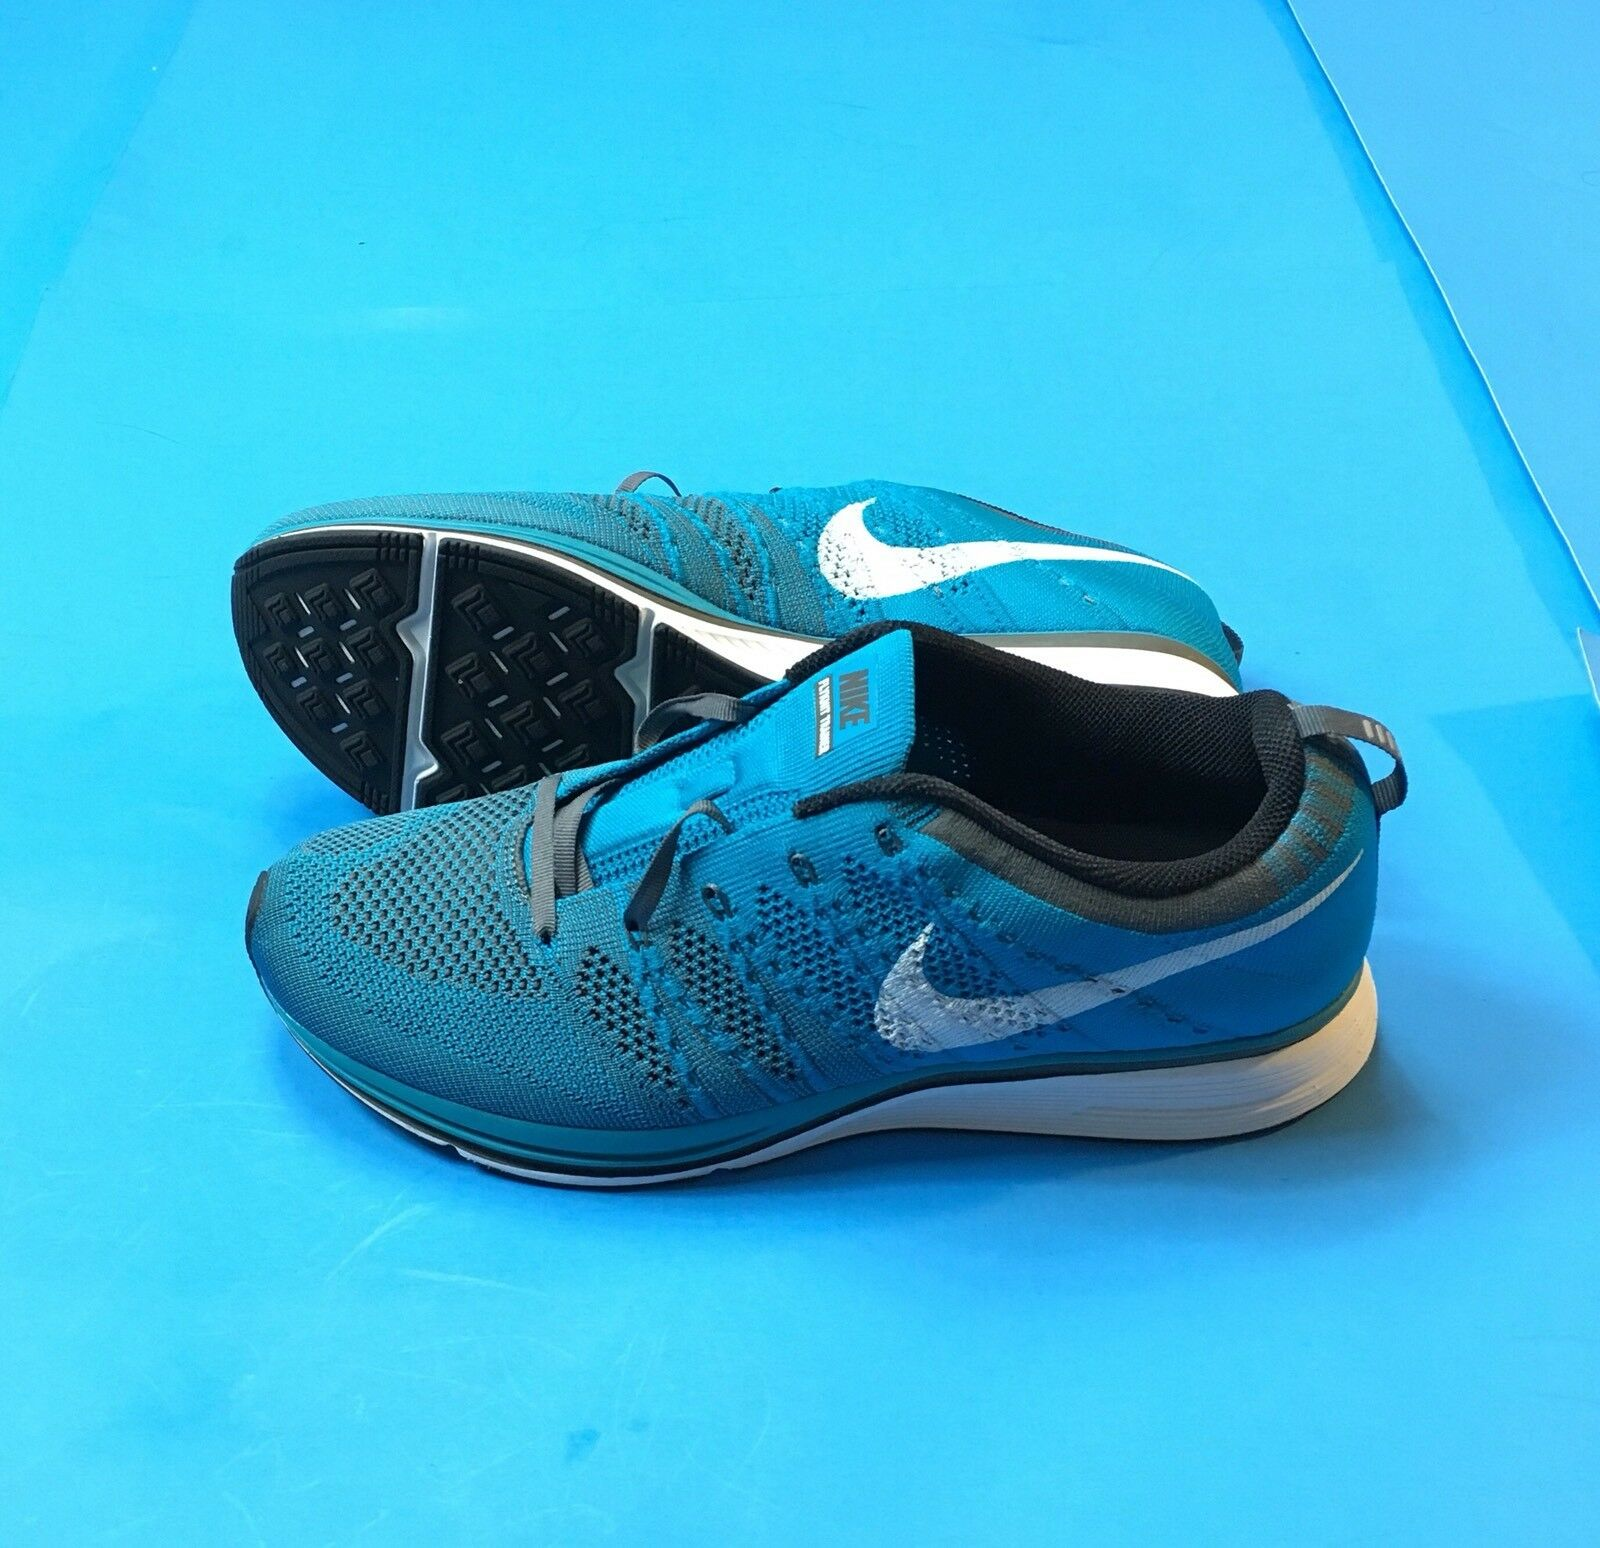 nike mens flyknit trainer blue white 2012 size 10.5